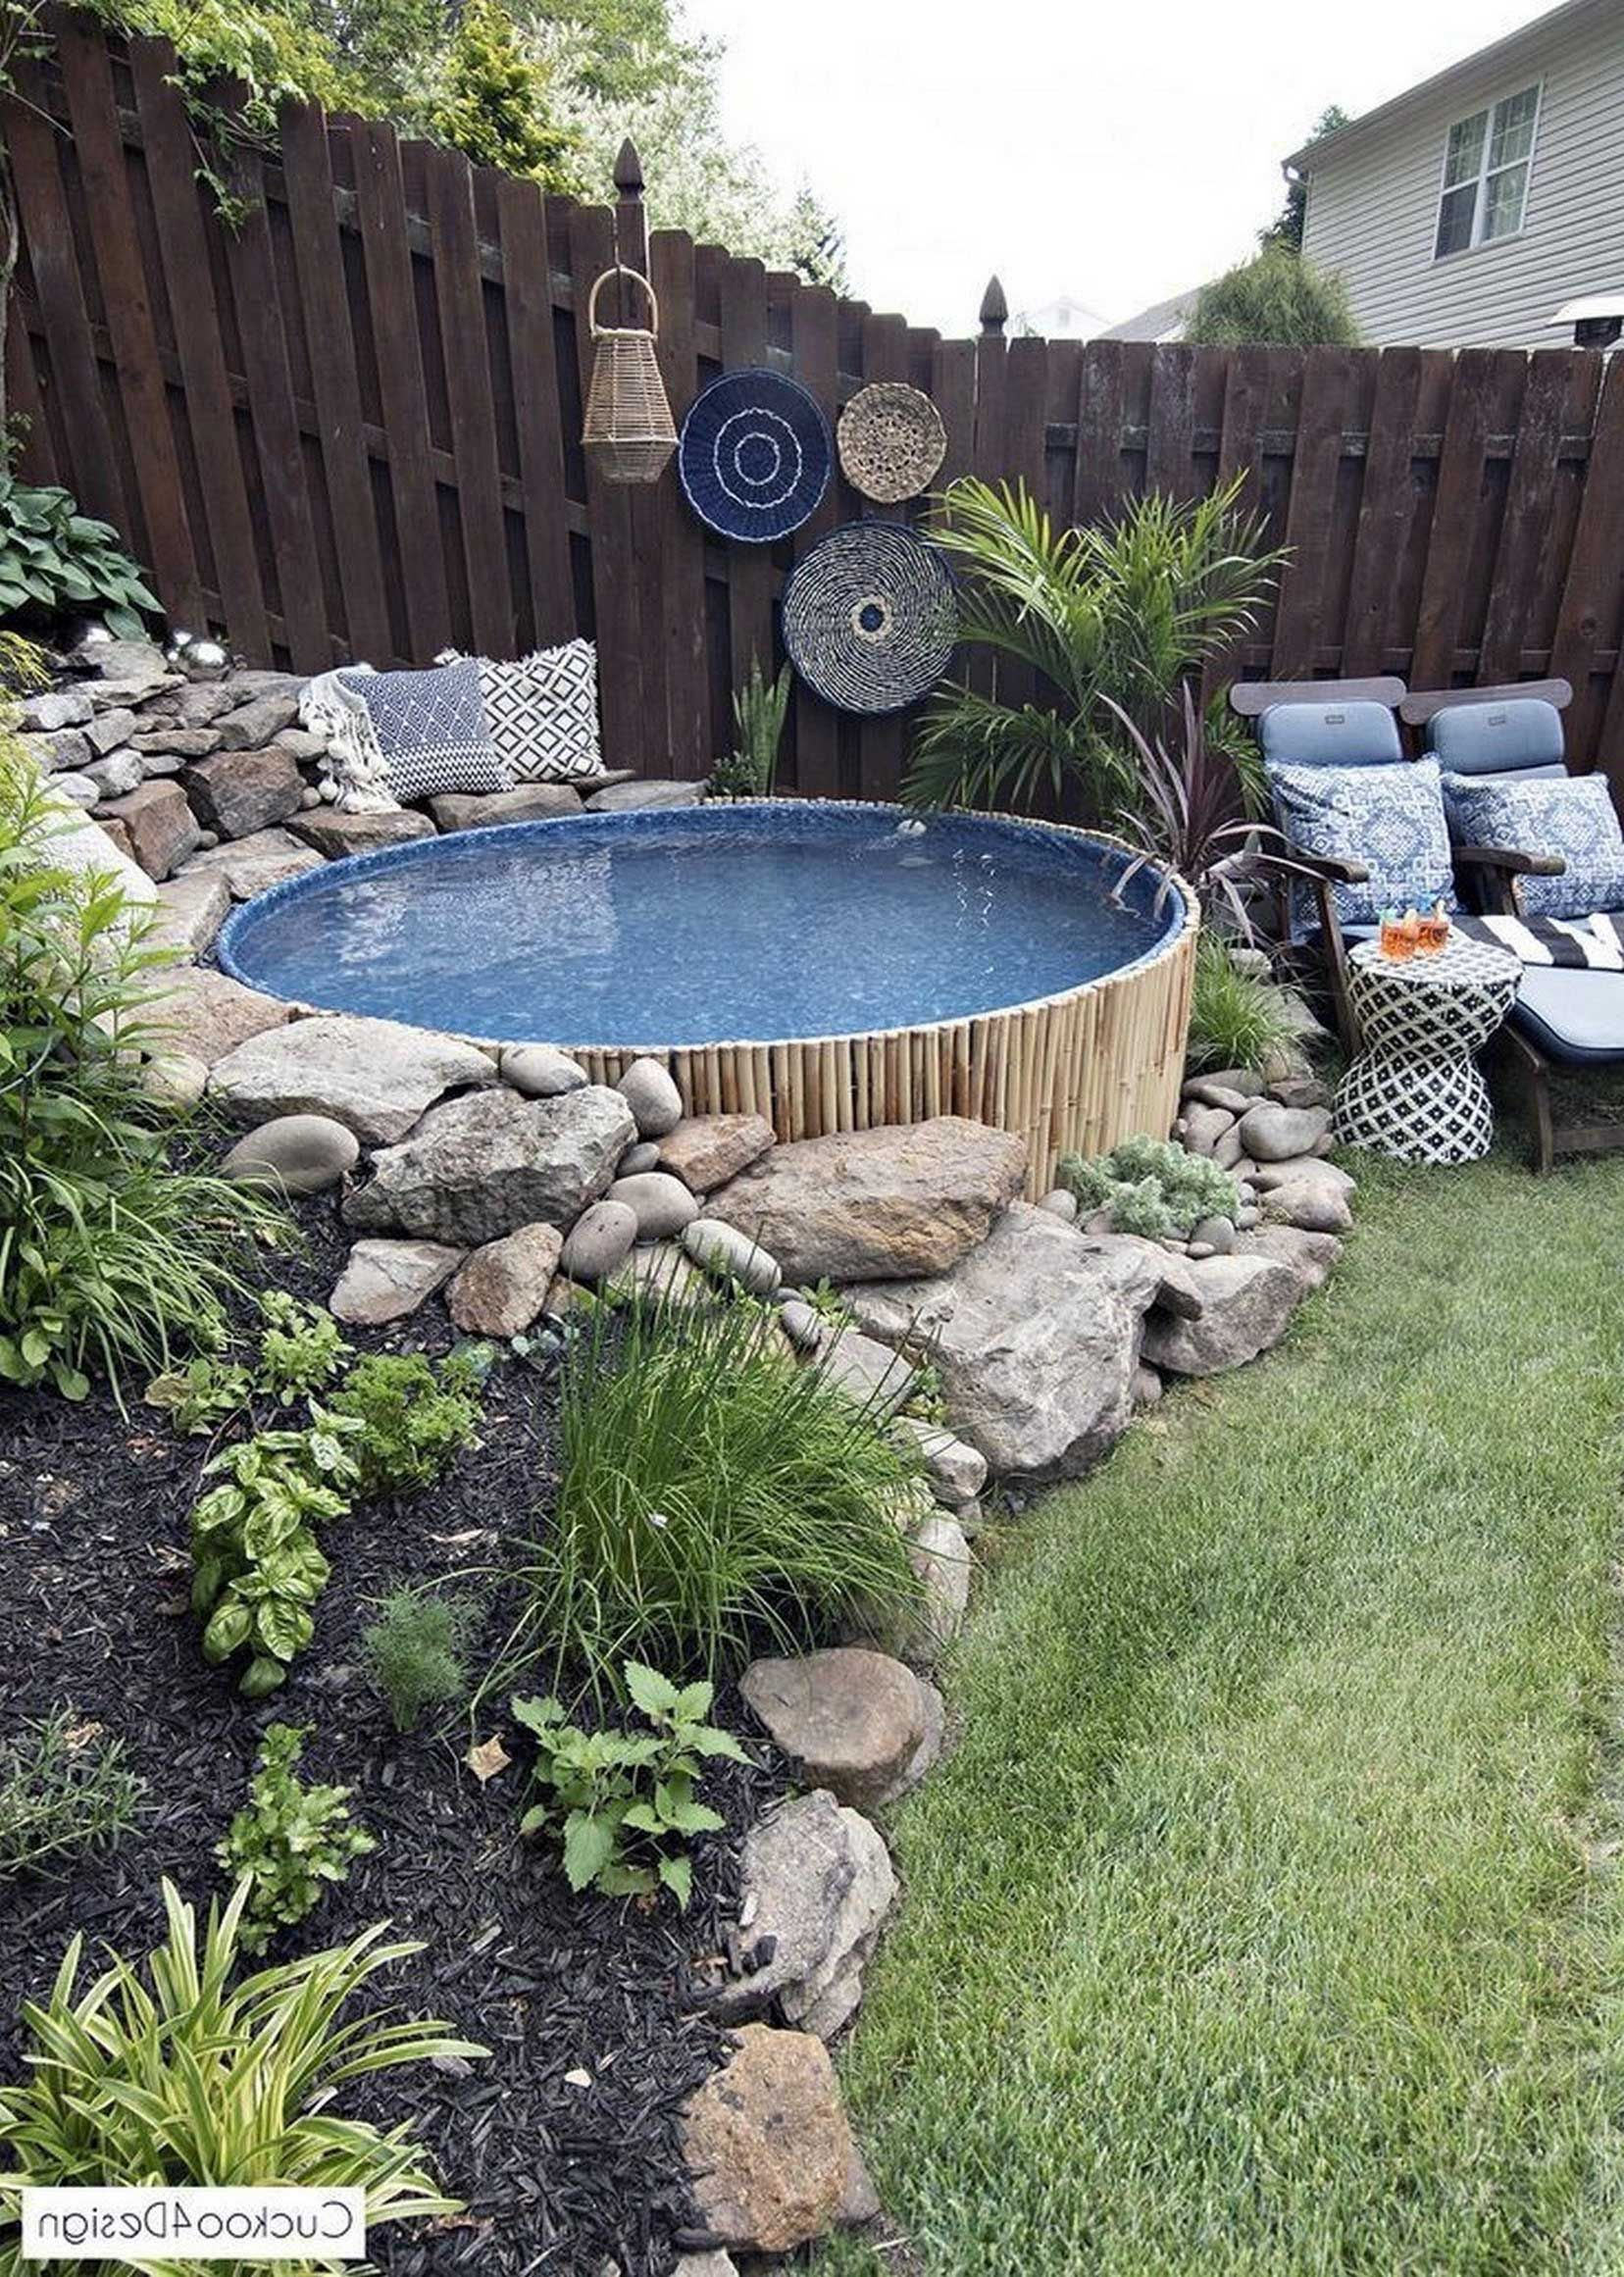 62 Amazing Backyard Landscaping On A Budget You Should Try ... on Small Sloped Backyard Ideas On A Budget id=92346